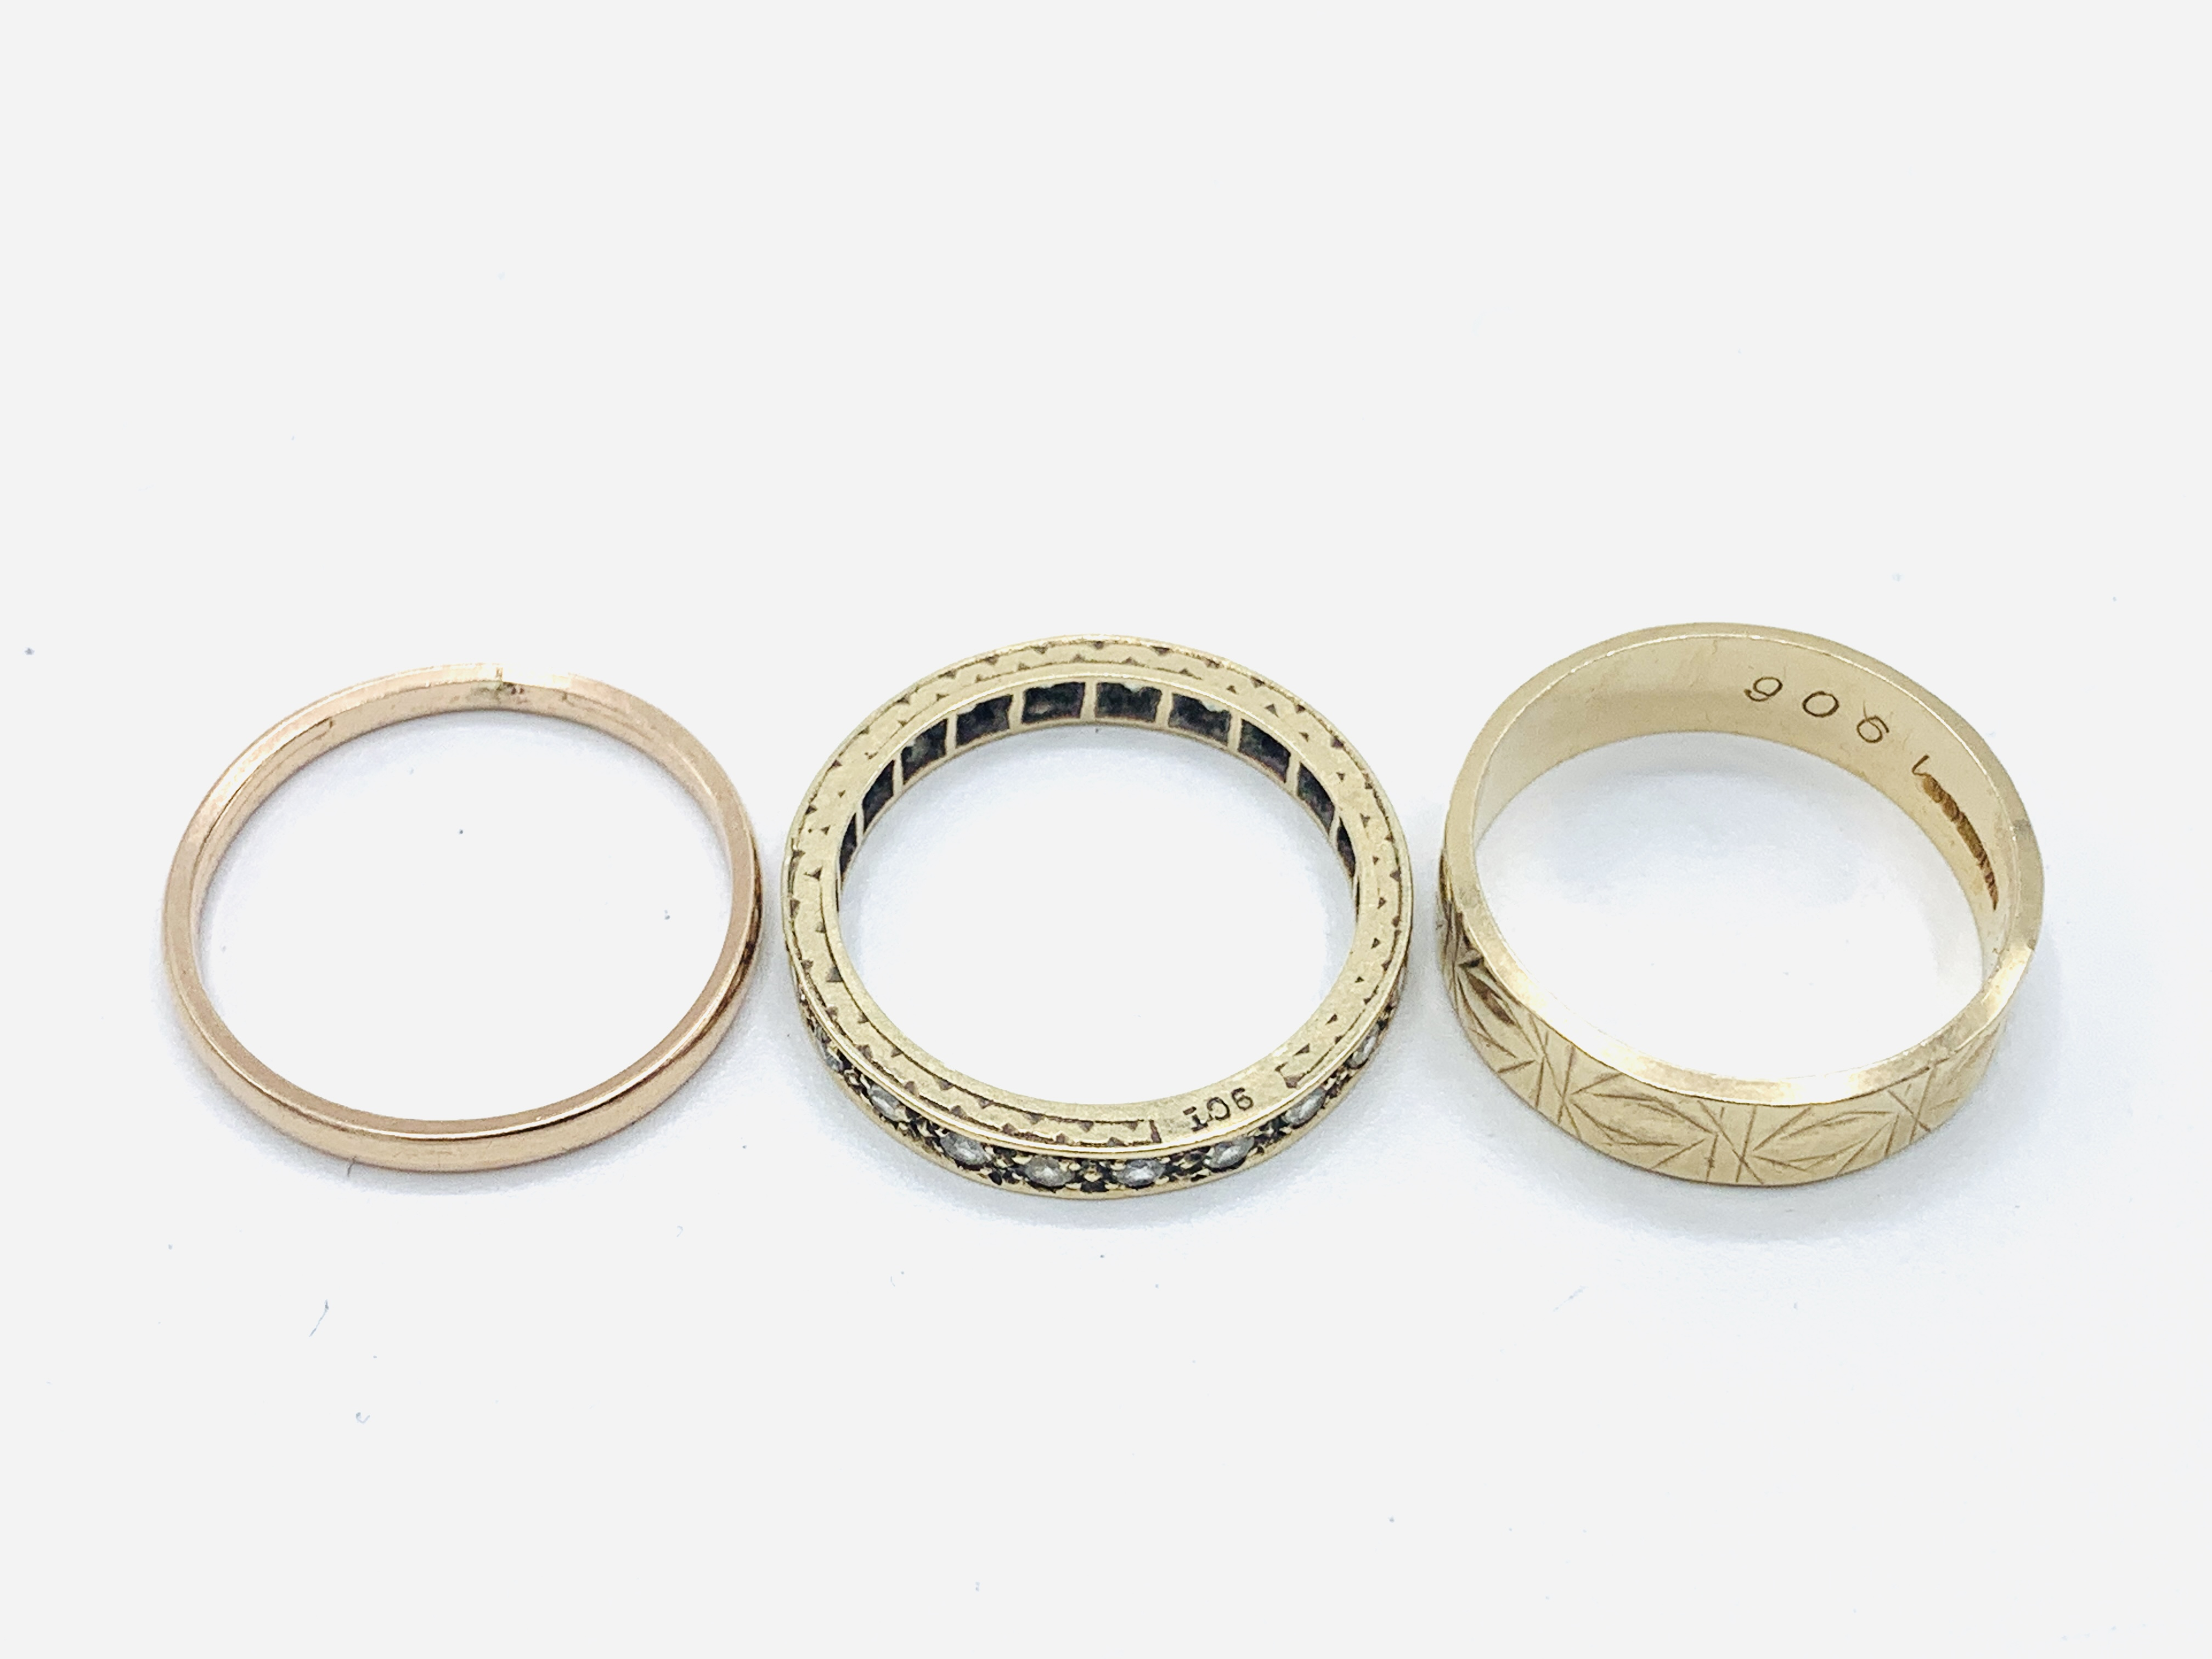 A 9ct gold band, a 9ct gold decorated band; and a 9ct gold and white stone eternity ring - Image 2 of 3